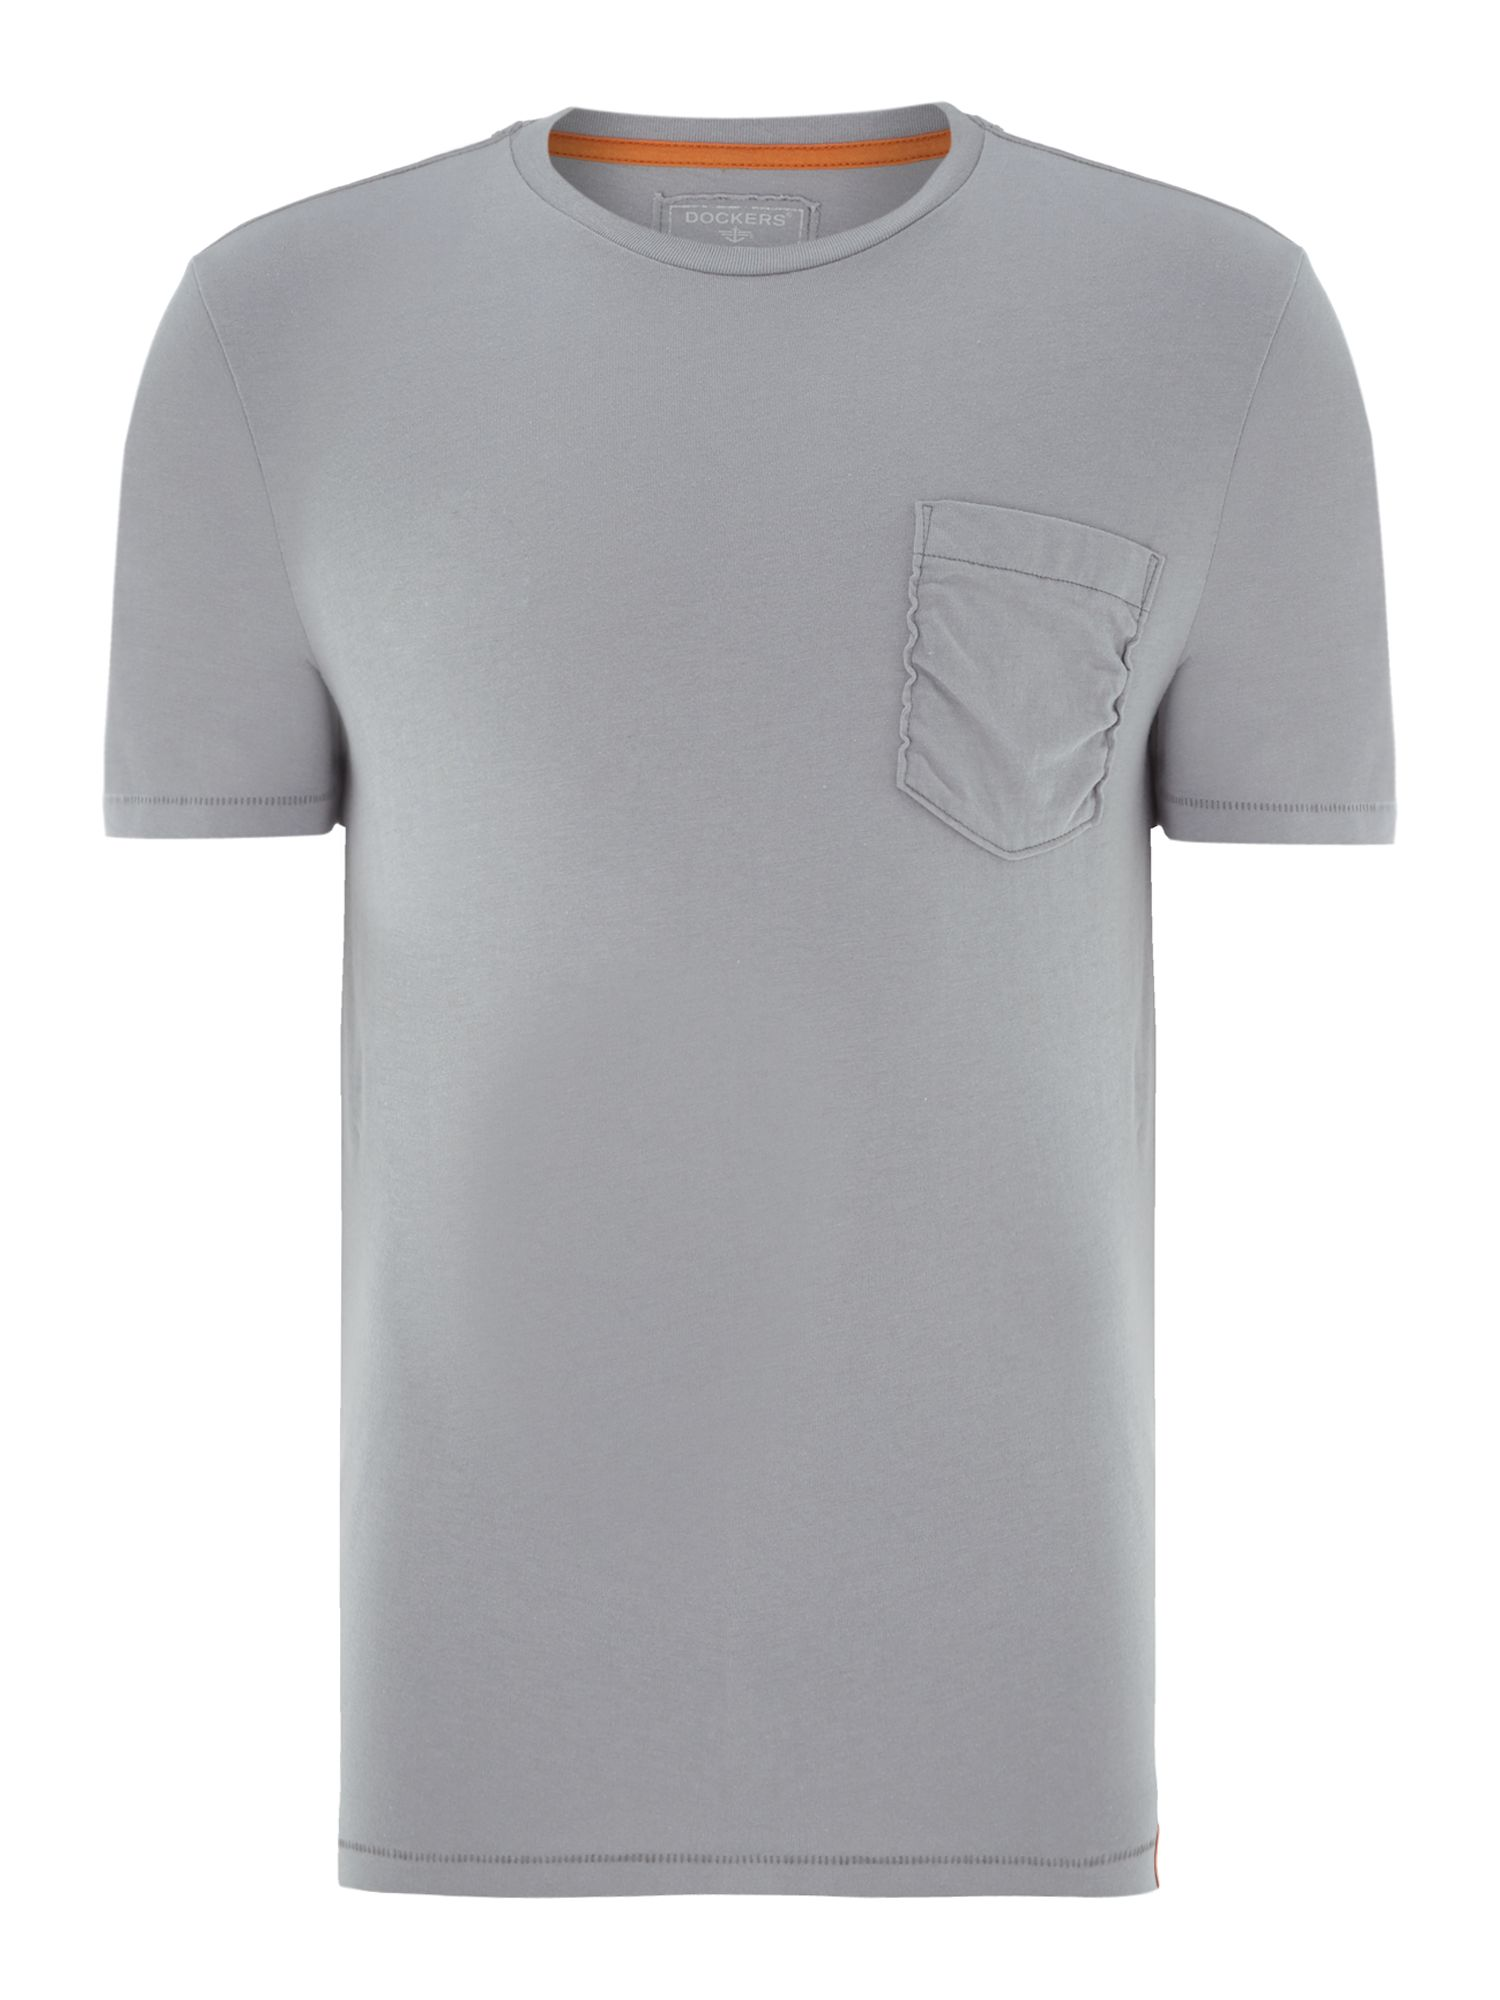 One pocket t shirt